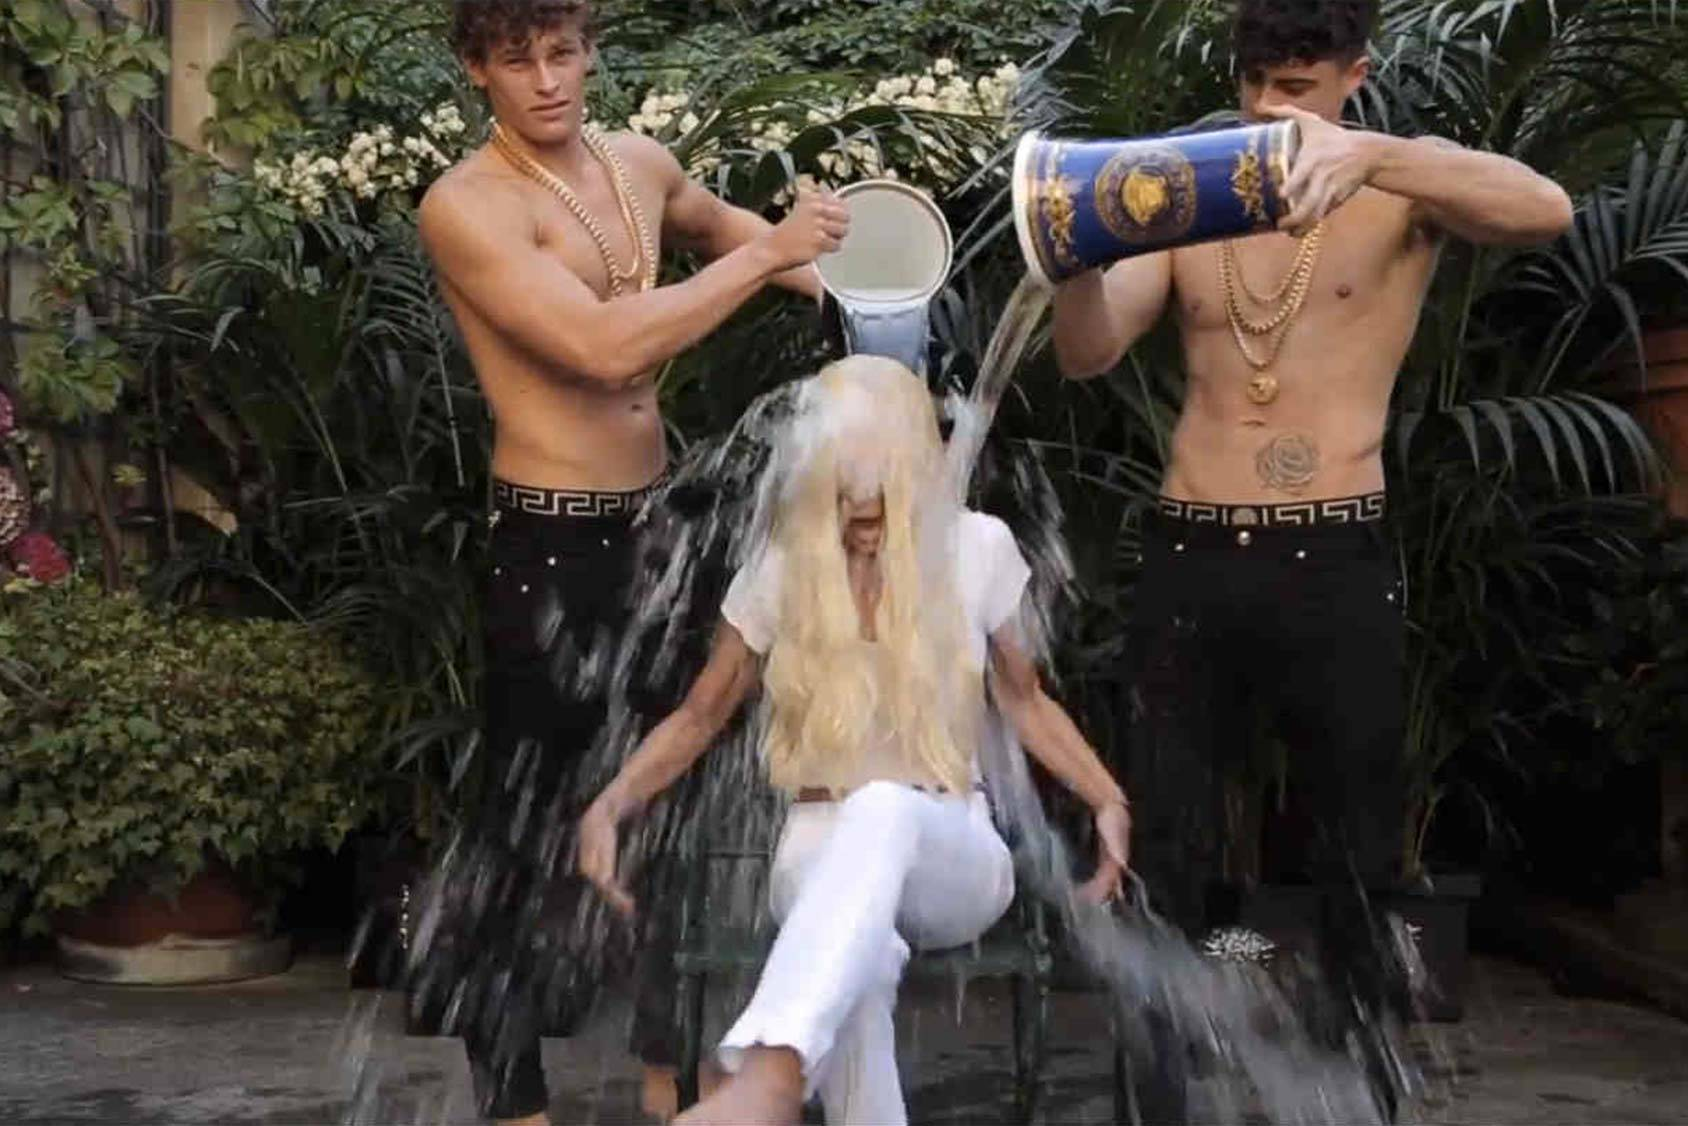 Last summer's ALS Ice Bucket Challenge got fashion companies to donated thousands of pounds to charity, thanks to the industry's most famous influencers taking on the challenge. Donatella Versace (pictured) was one of many wet activists, All Over Press.